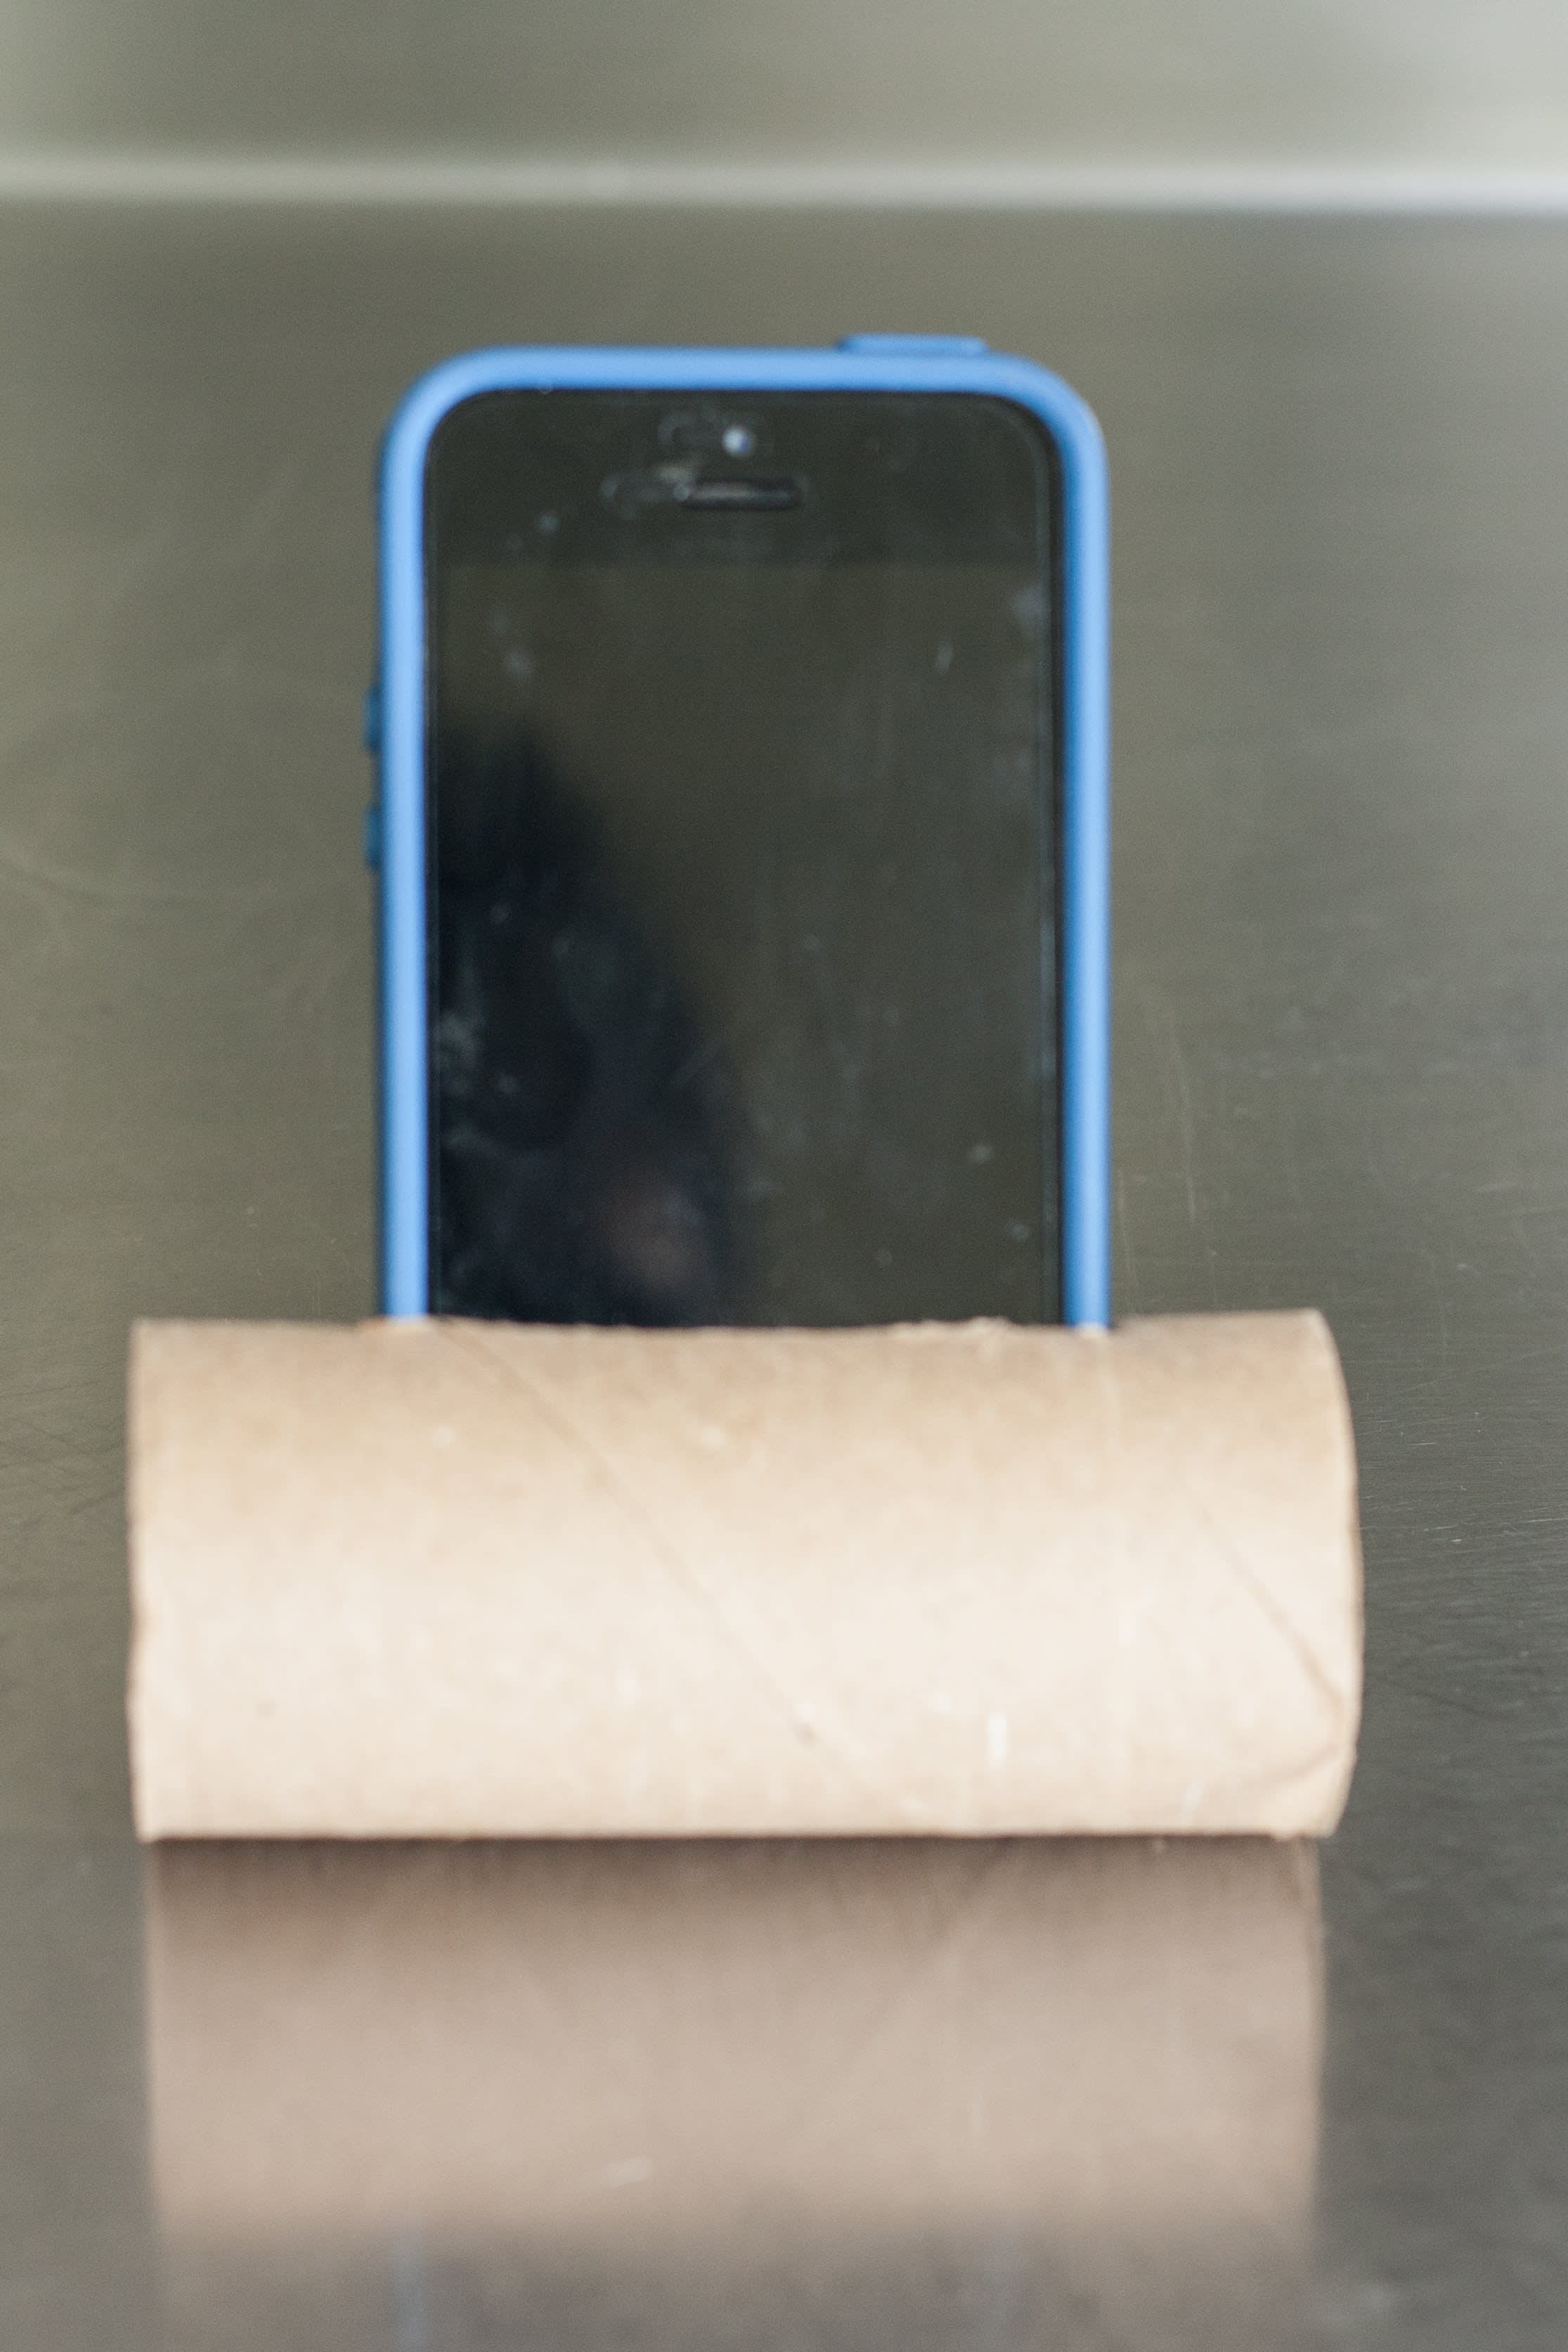 5 Cheap Ways To Make IPhone Speakers For The Kitchen: Gallery Image 6